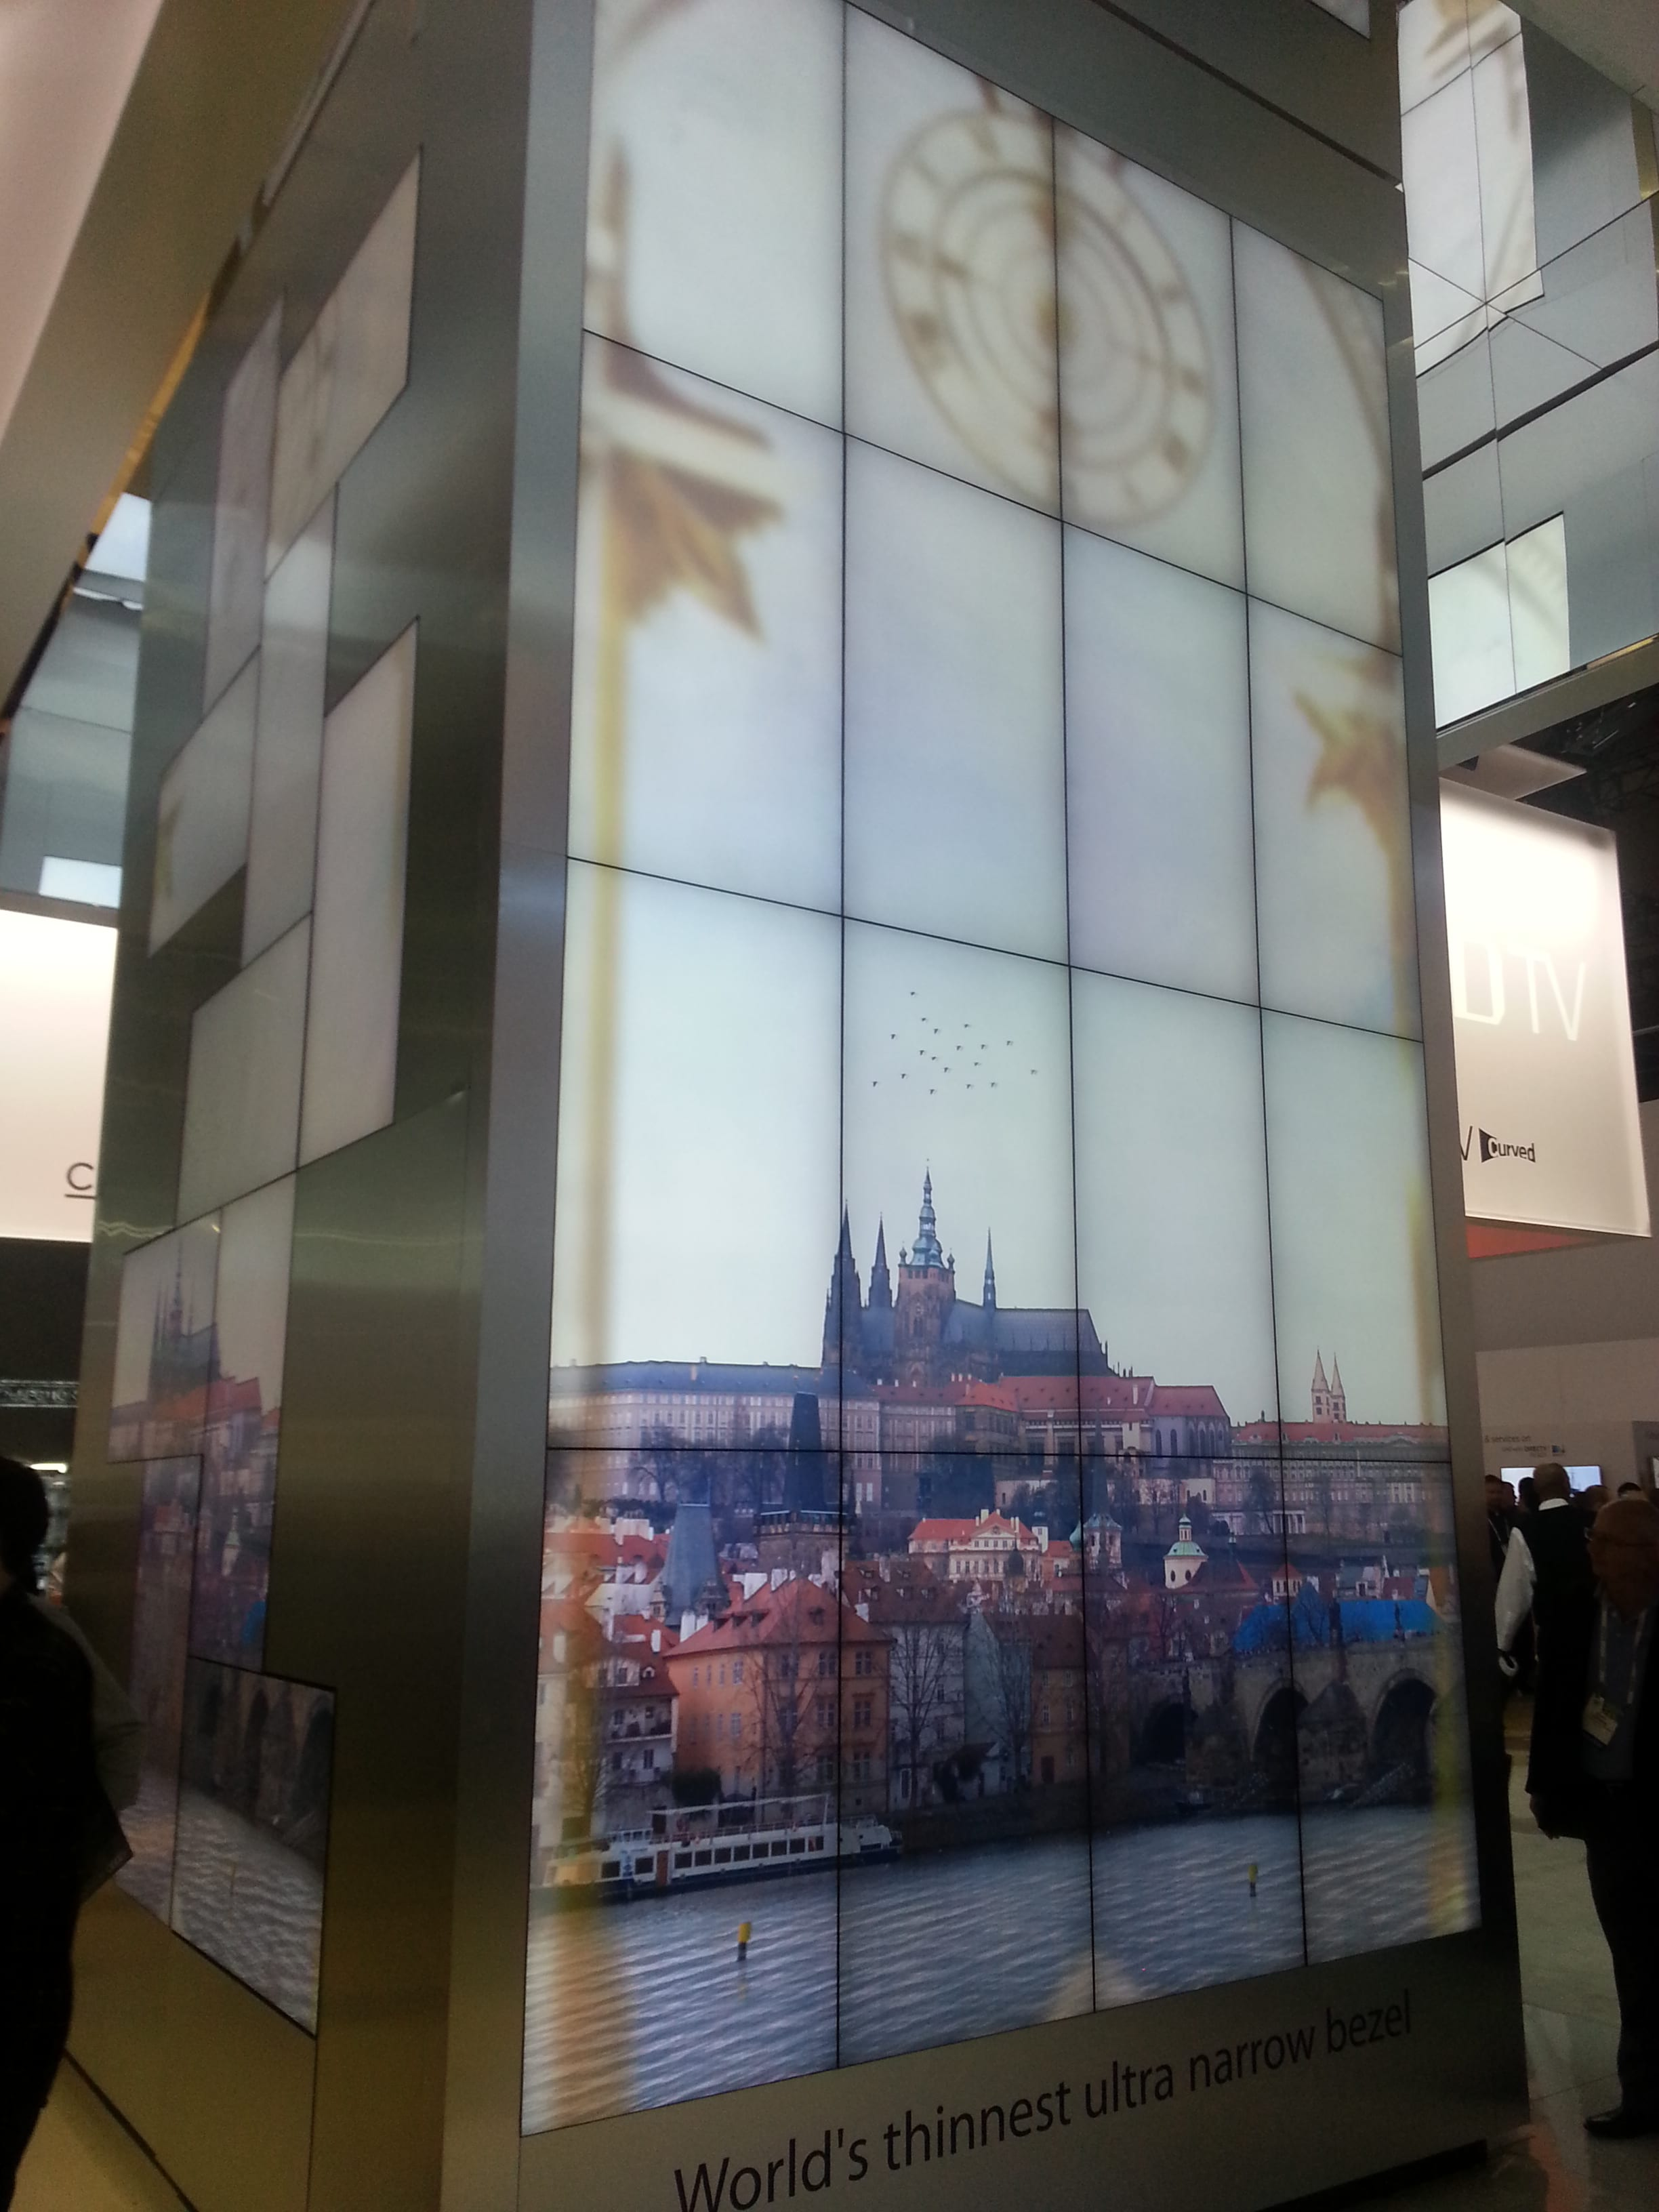 Samsung presented some great commercial solutions for video walls at CES2014